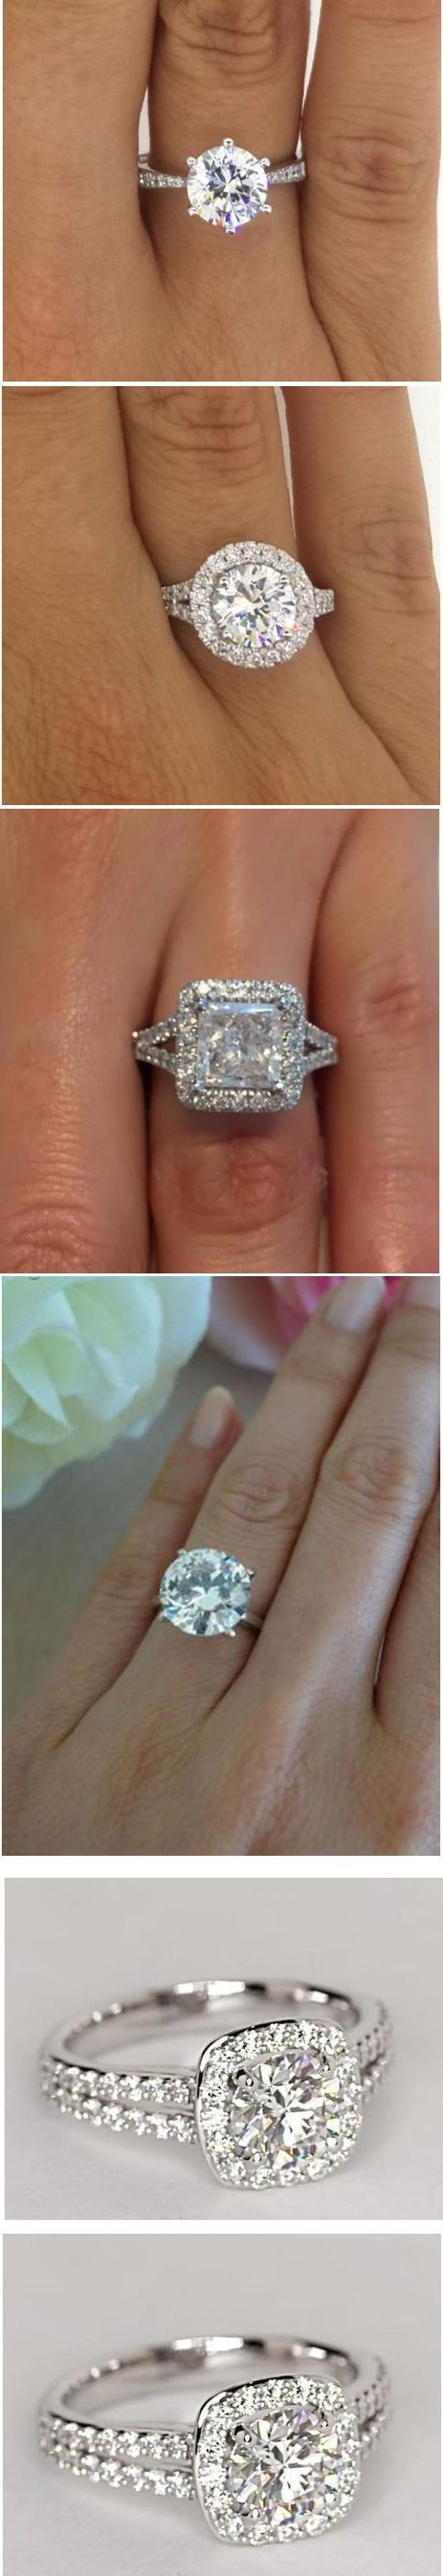 Bijoux  Tendance 2017/2018  : Best Diamond Engagement Rings On SALE | Bridal Rings | Jewelry of the day | Enga